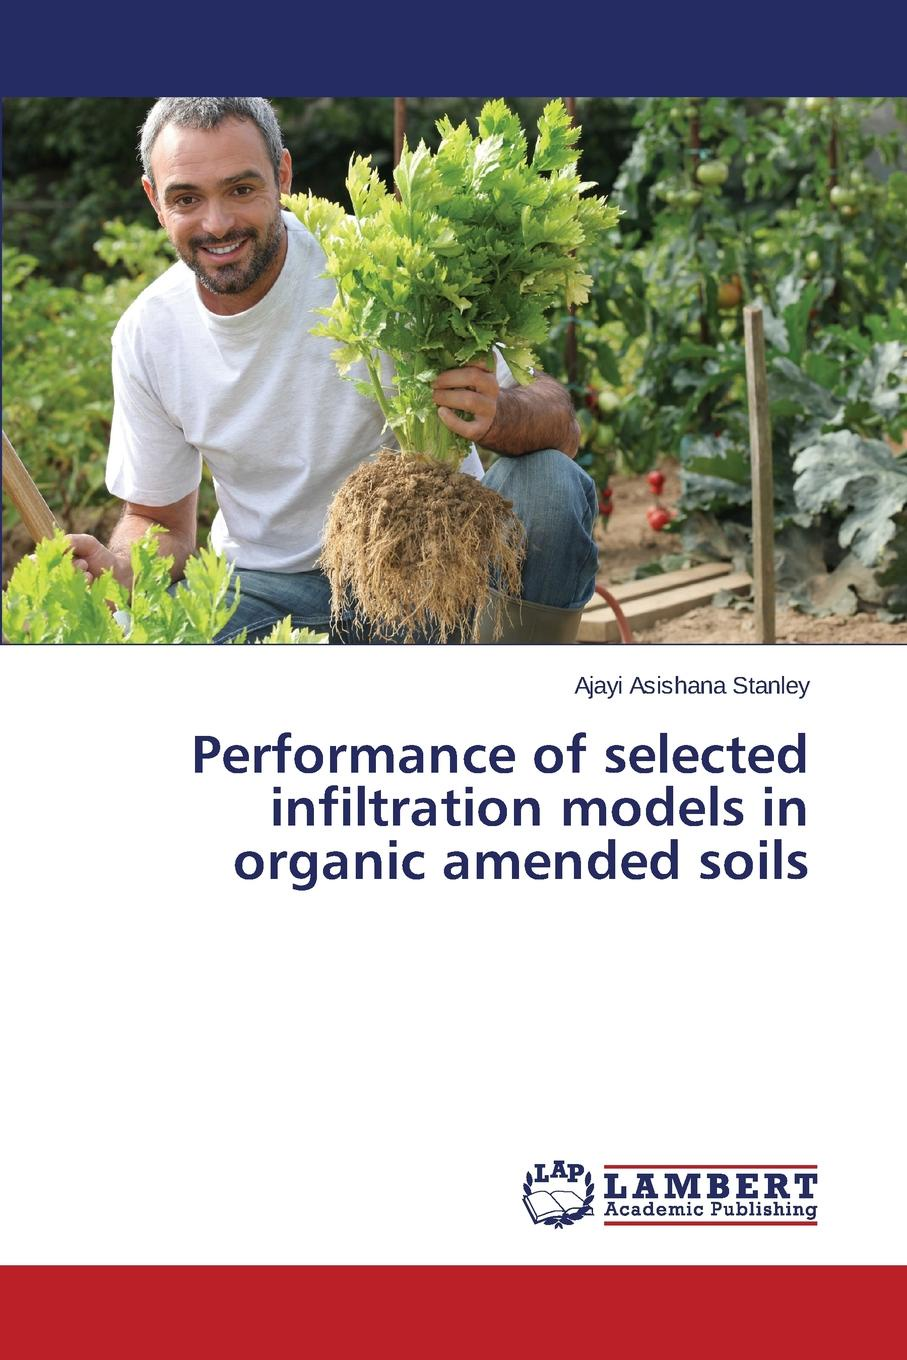 Asishana Stanley Ajayi Performance of selected infiltration models in organic amended soils